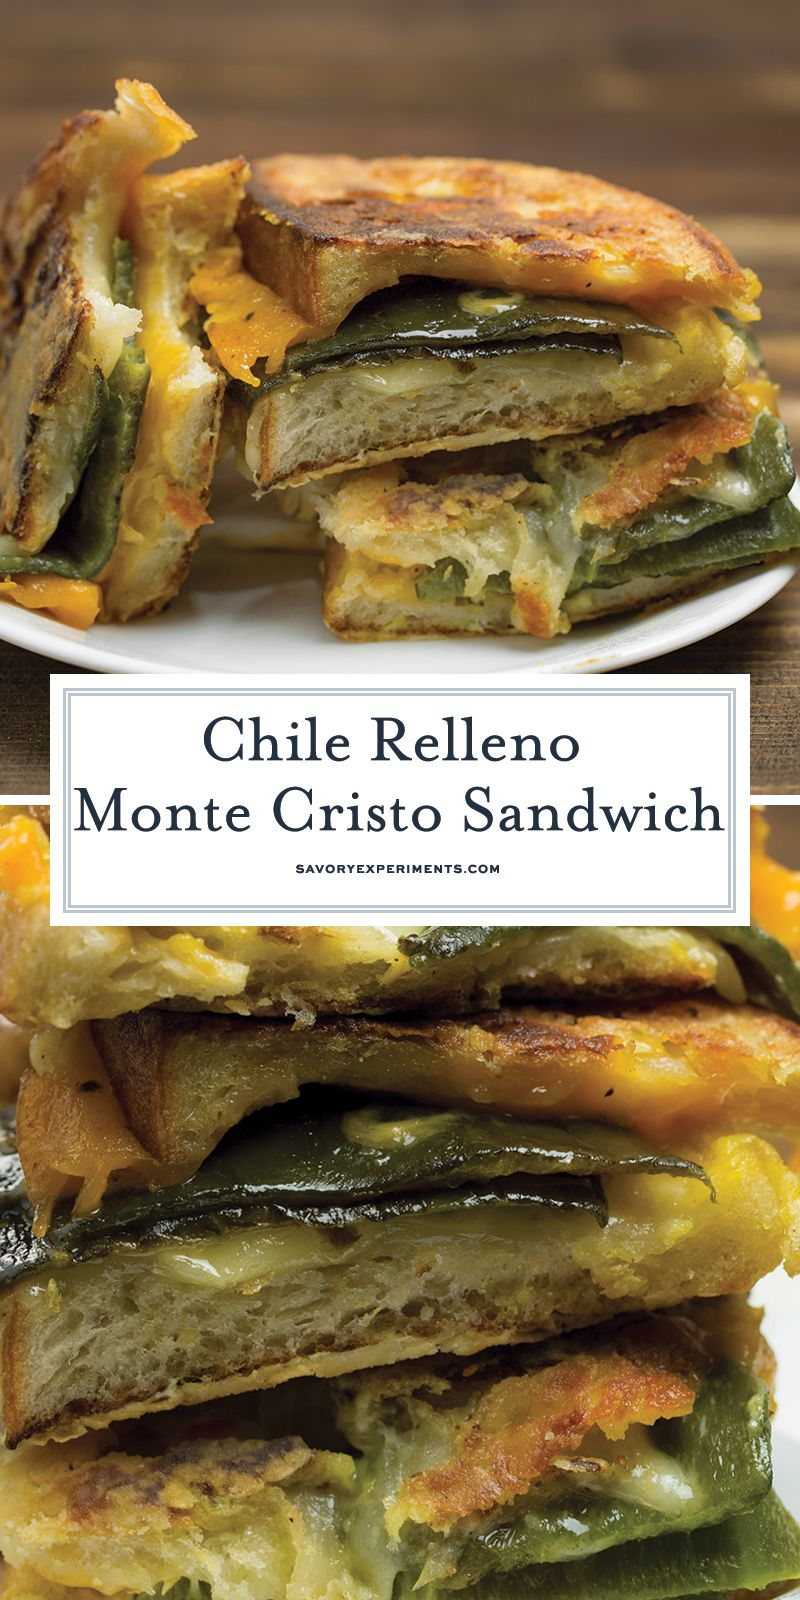 Chile Relleno Monte Cristo is a classic grilled cheese with pepper jack, cheddar and green chile and then battered and fried Monte Cristo style. #montecristo #chilerelleno www.savoryexperiments.com #montecristosandwich